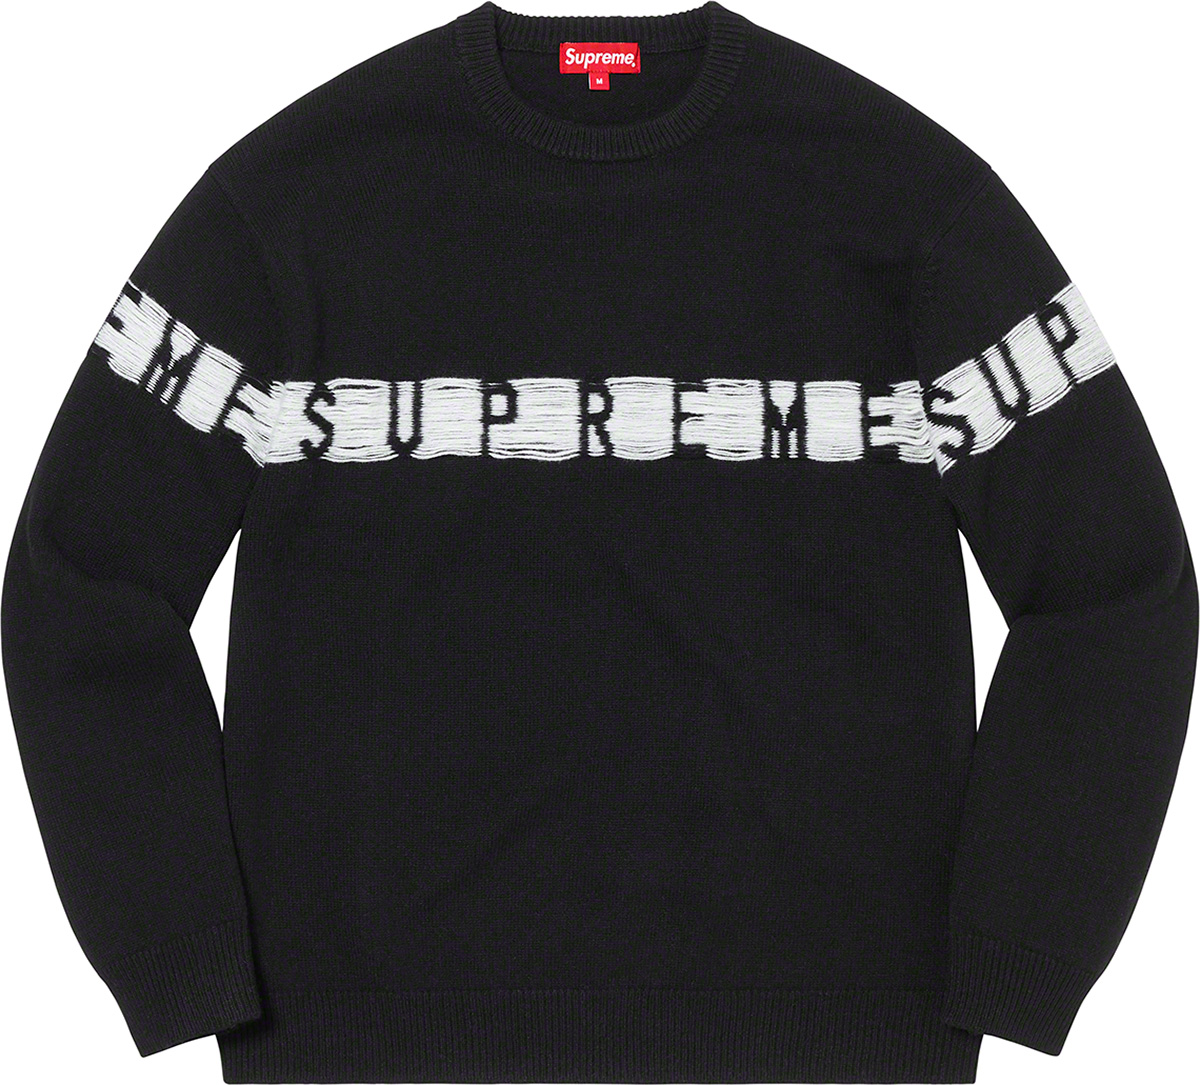 supreme-21ss-spring-summer-inside-out-logo-sweater